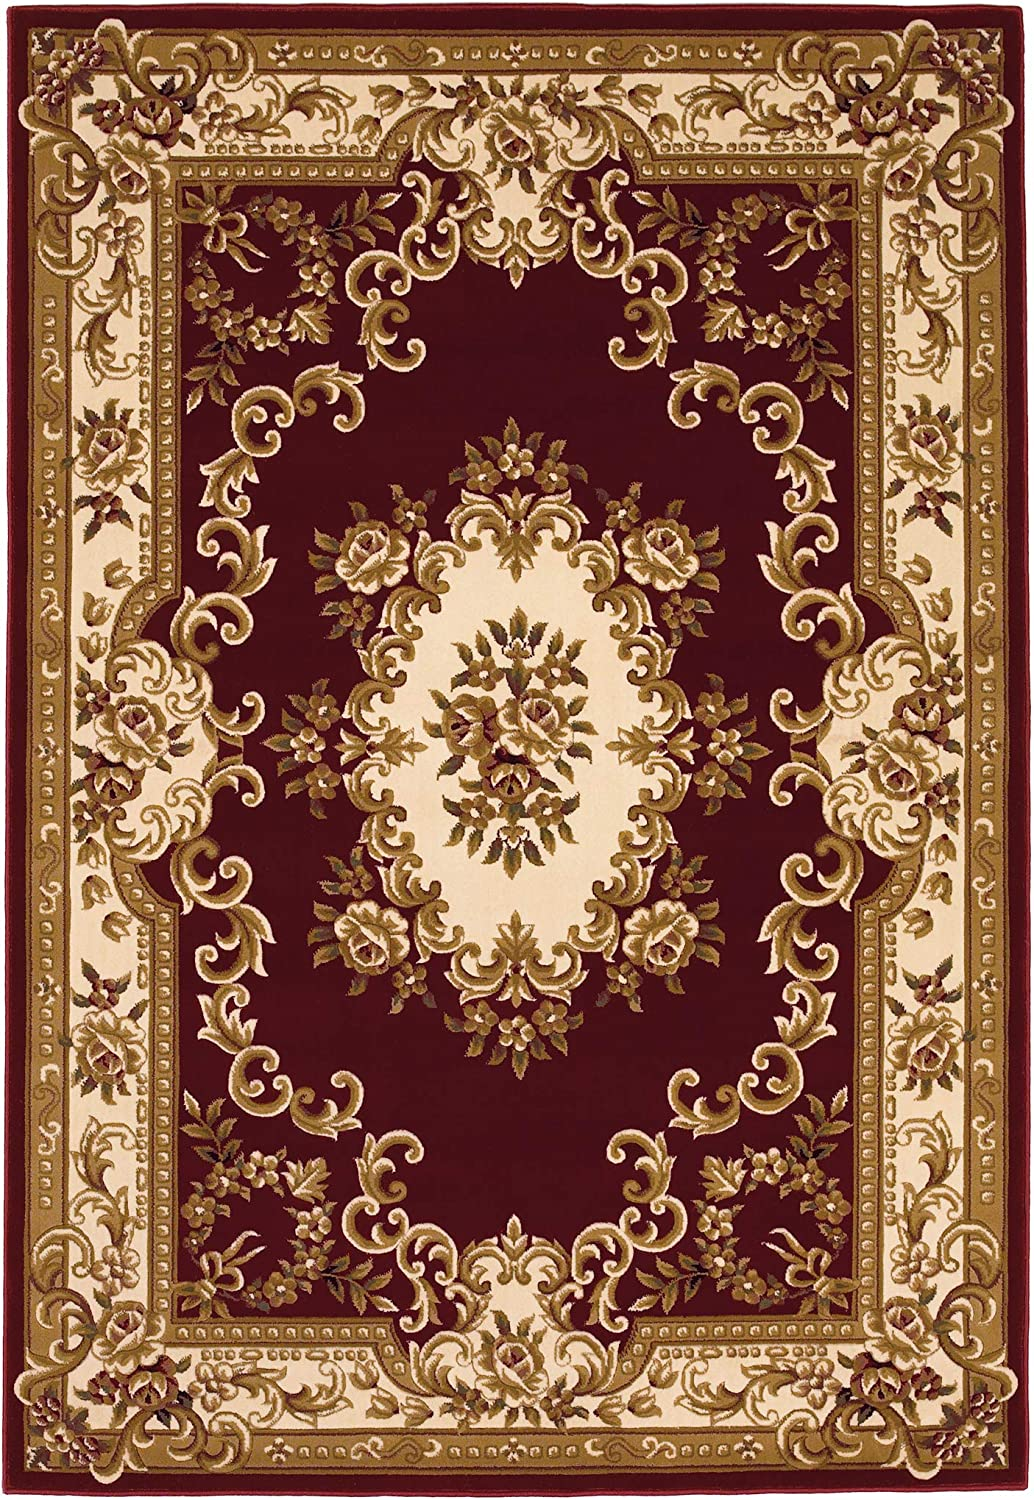 Discount mail order KAS Oriental Rugs Corinthian Collection 2'3